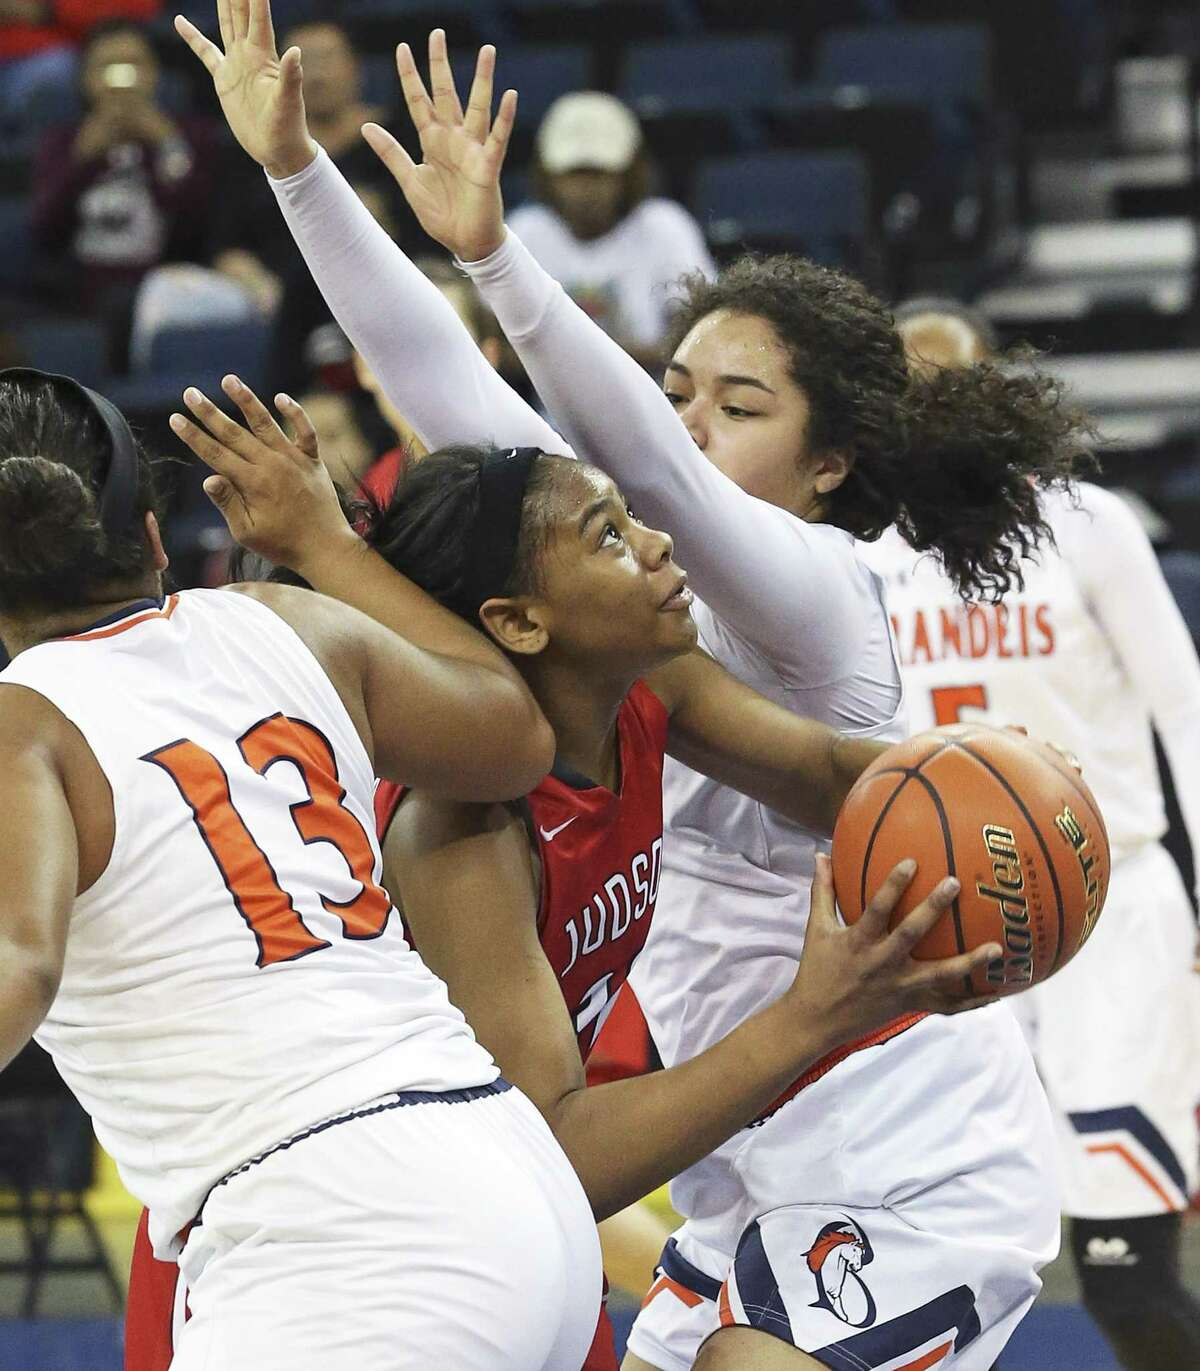 Desiree Lewis slips under Denay Griffin (13) and Marissa Andrews to score as Judson beats Brandeis 64-56 at the Laredo Energy Arena in the Region IV-6A final of girls basketball on February 25, 2017.